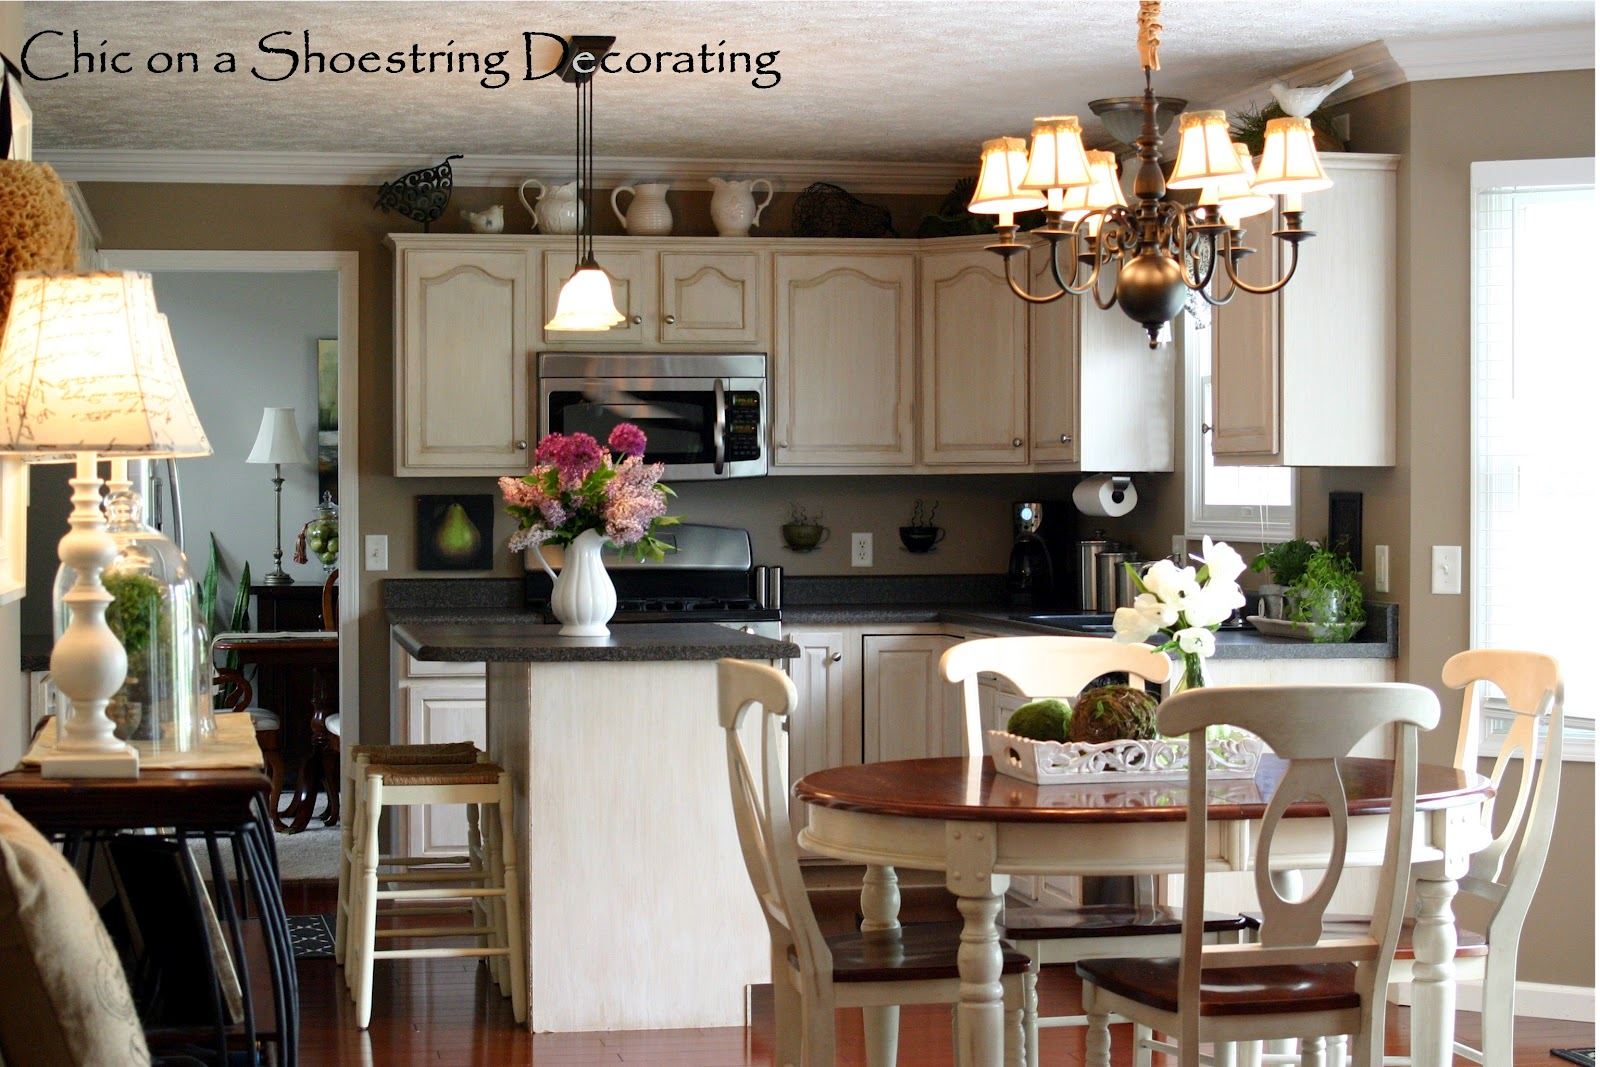 chic on a shoestring decorating 31 days of decorating on